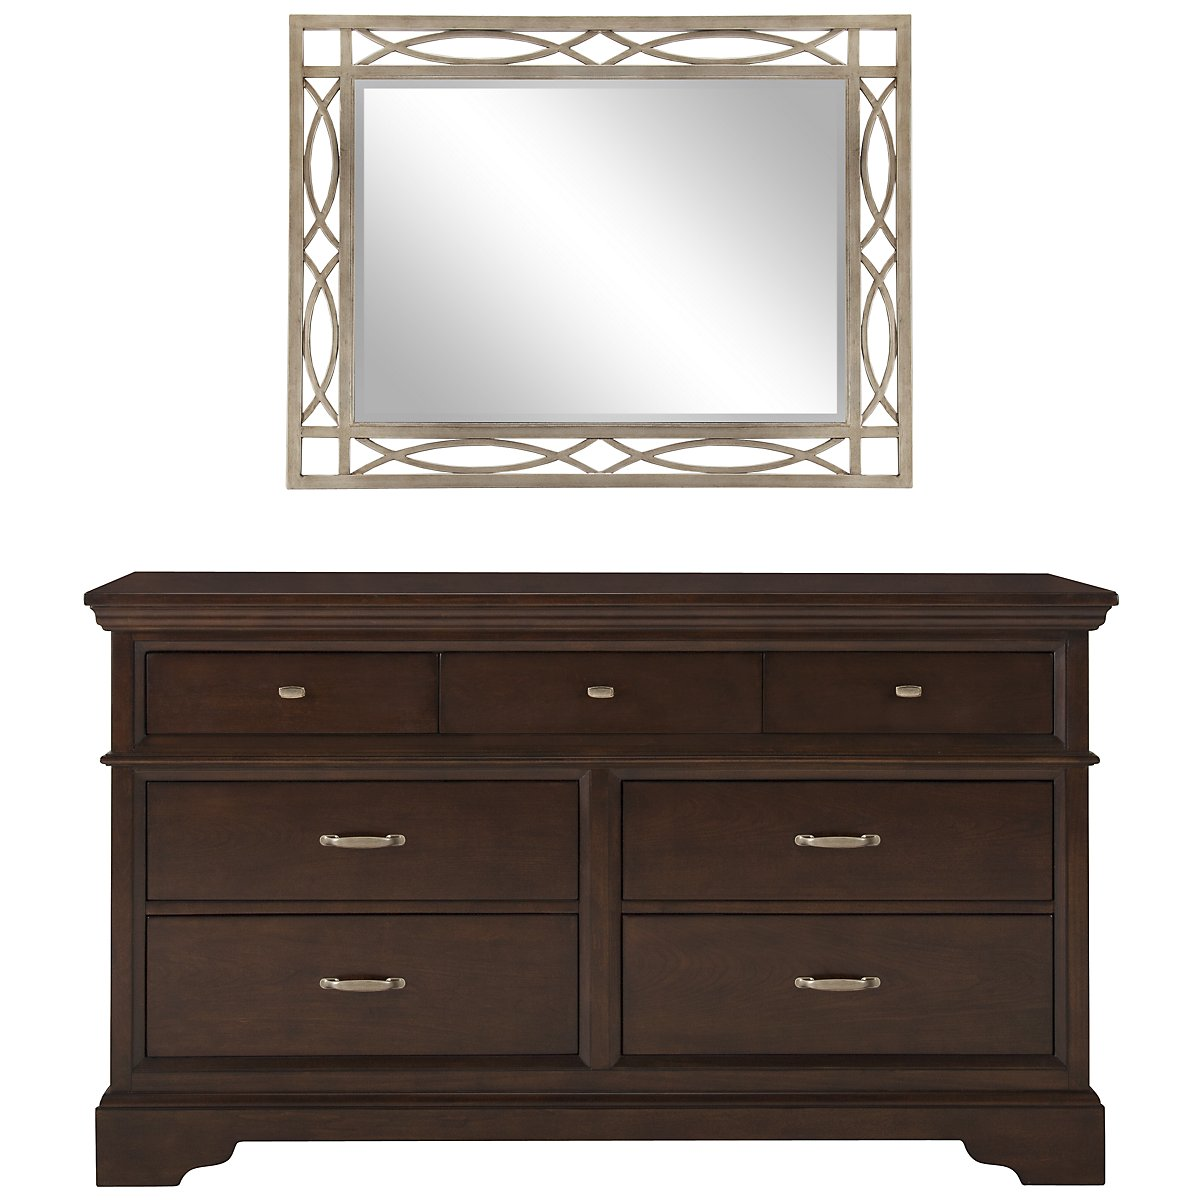 Canyon Dark Tone Small Dresser & Mirror